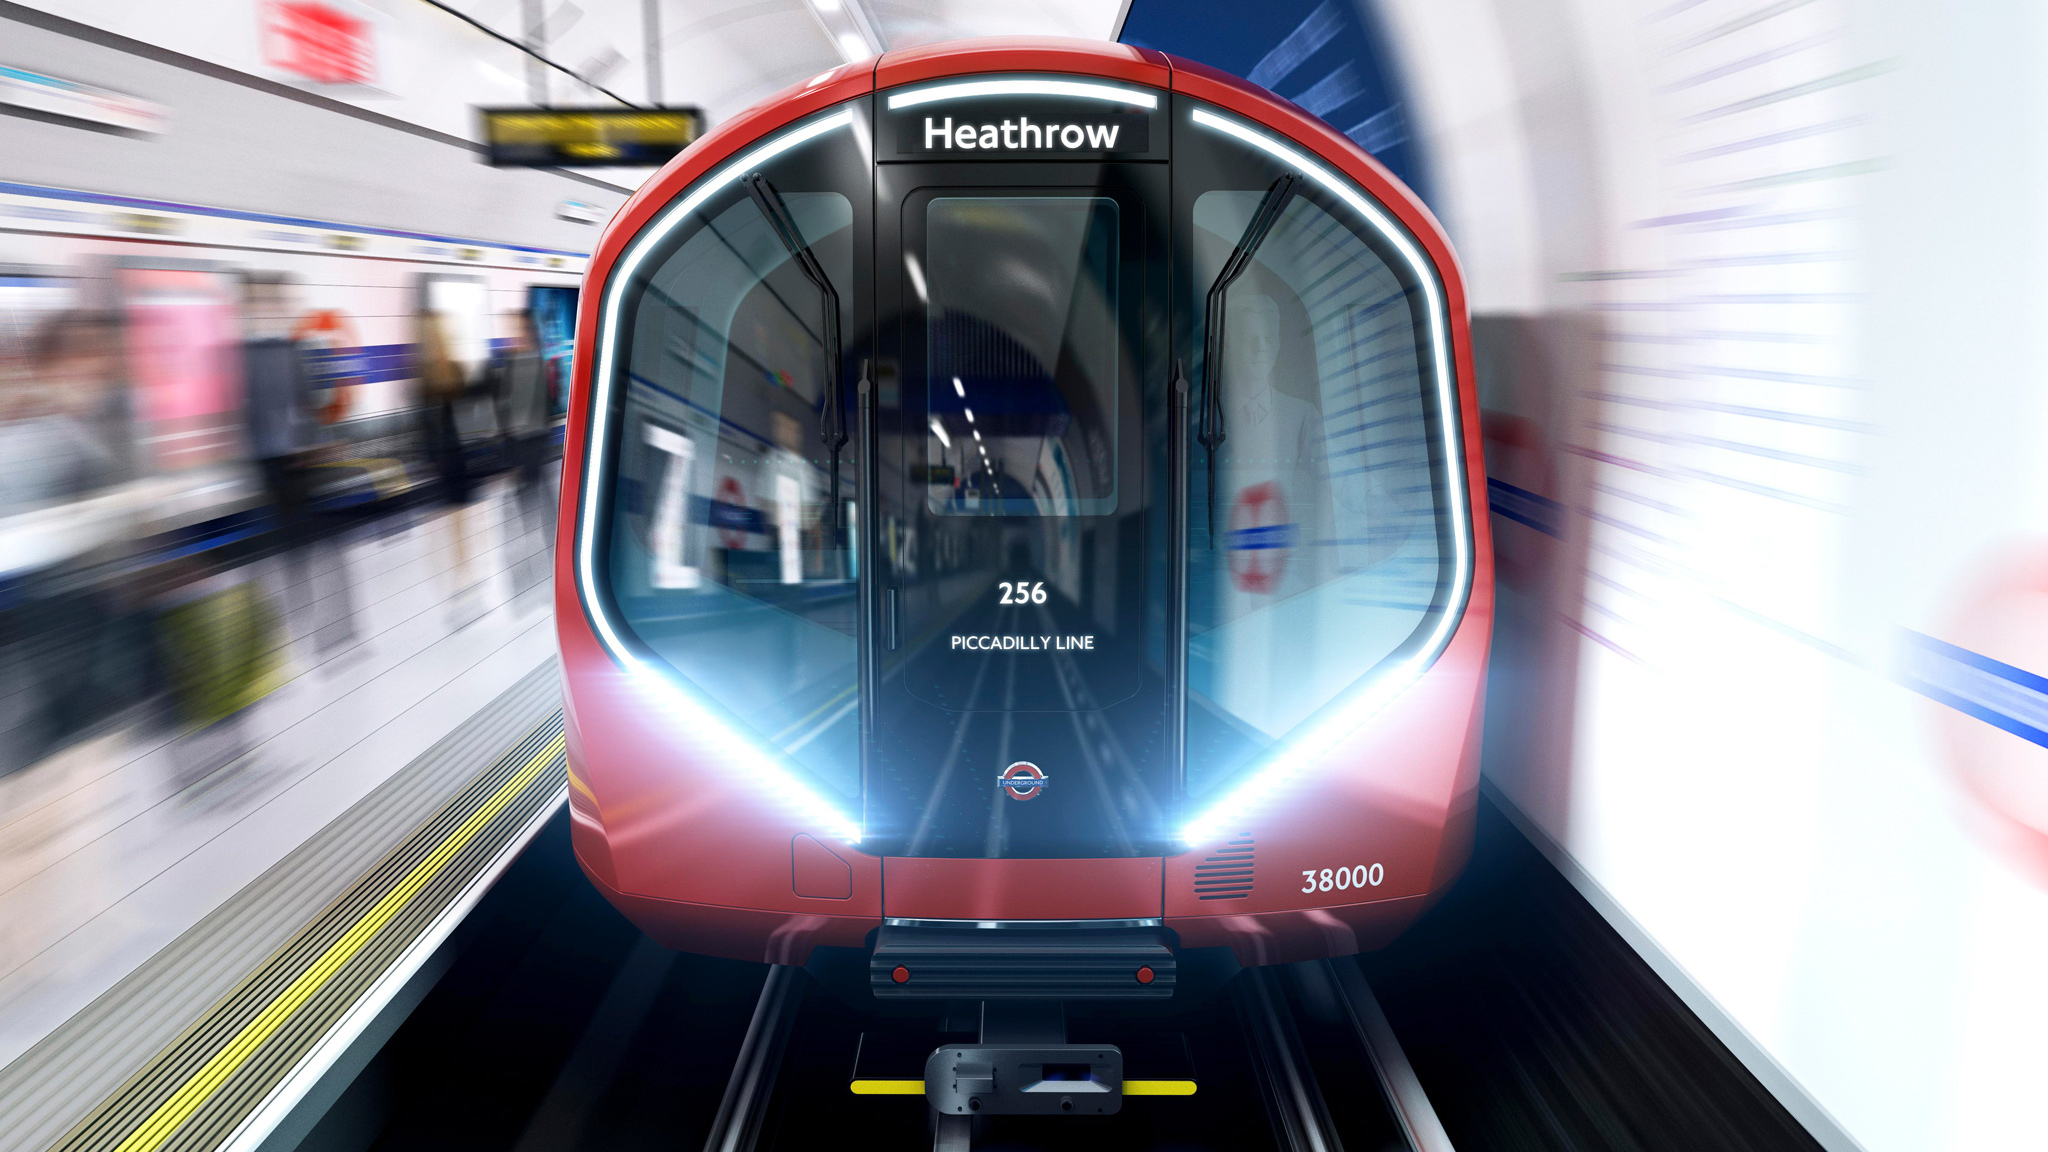 New tube train on the Piccadilly Line